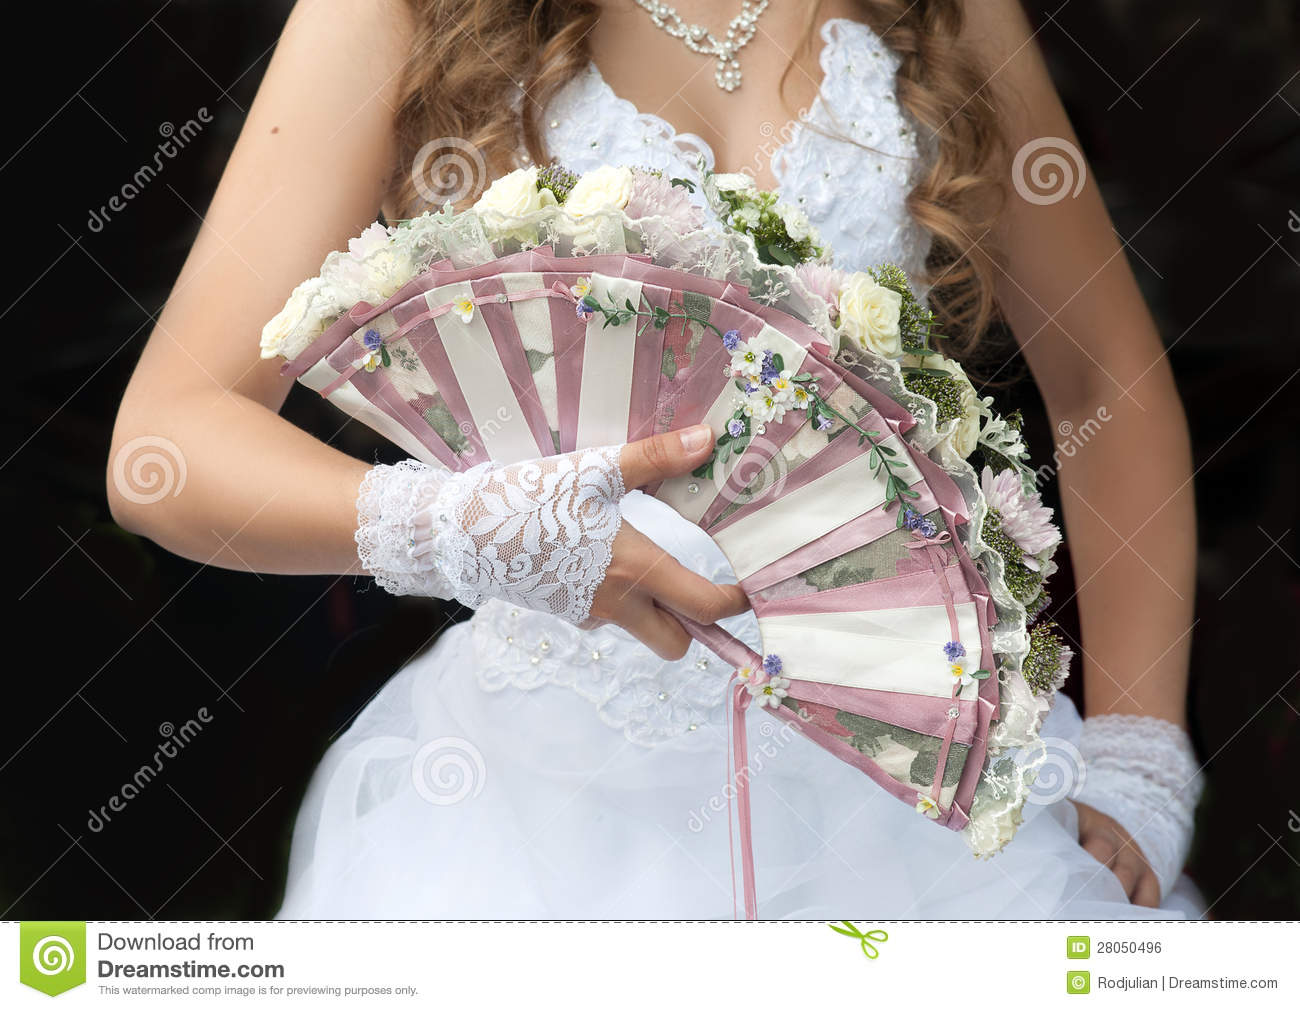 Wedding Fan-bouquet Decorated With Roses Stock Photo - Image